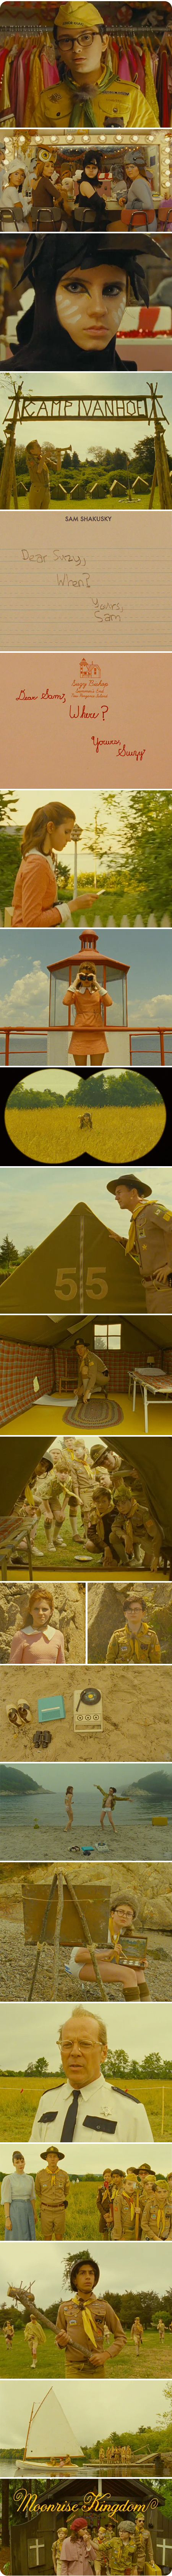 wes anderson - frame worthy stills from 'moonrise kingdom'